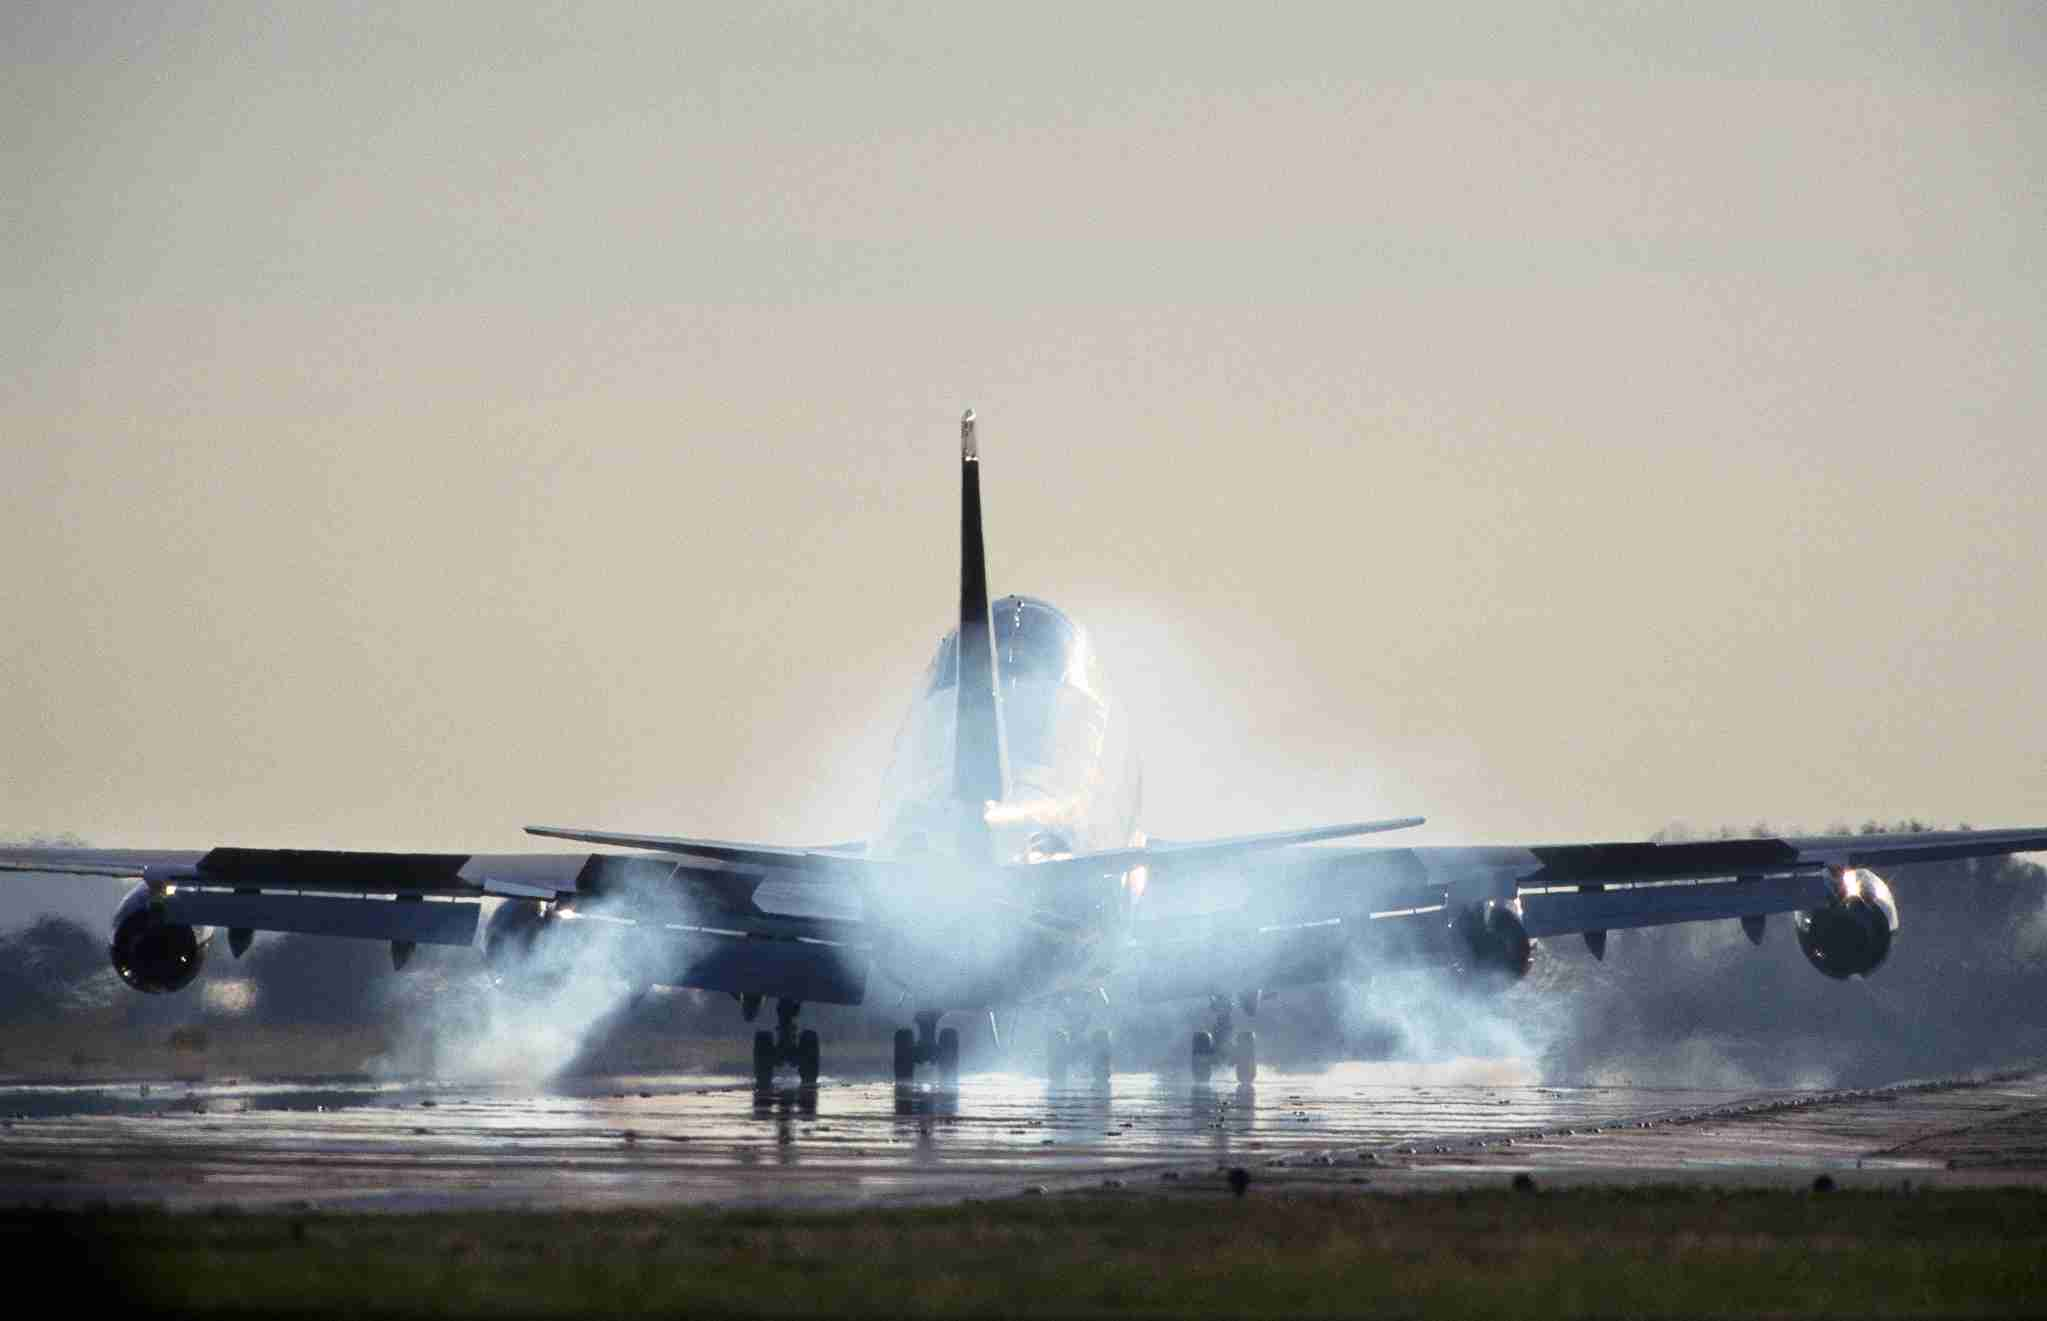 Boeing 747-400 with smoking tyres at touchdown landing on the runway. (Photo by: aviation-images.com/Universal Images Group via Getty Images)